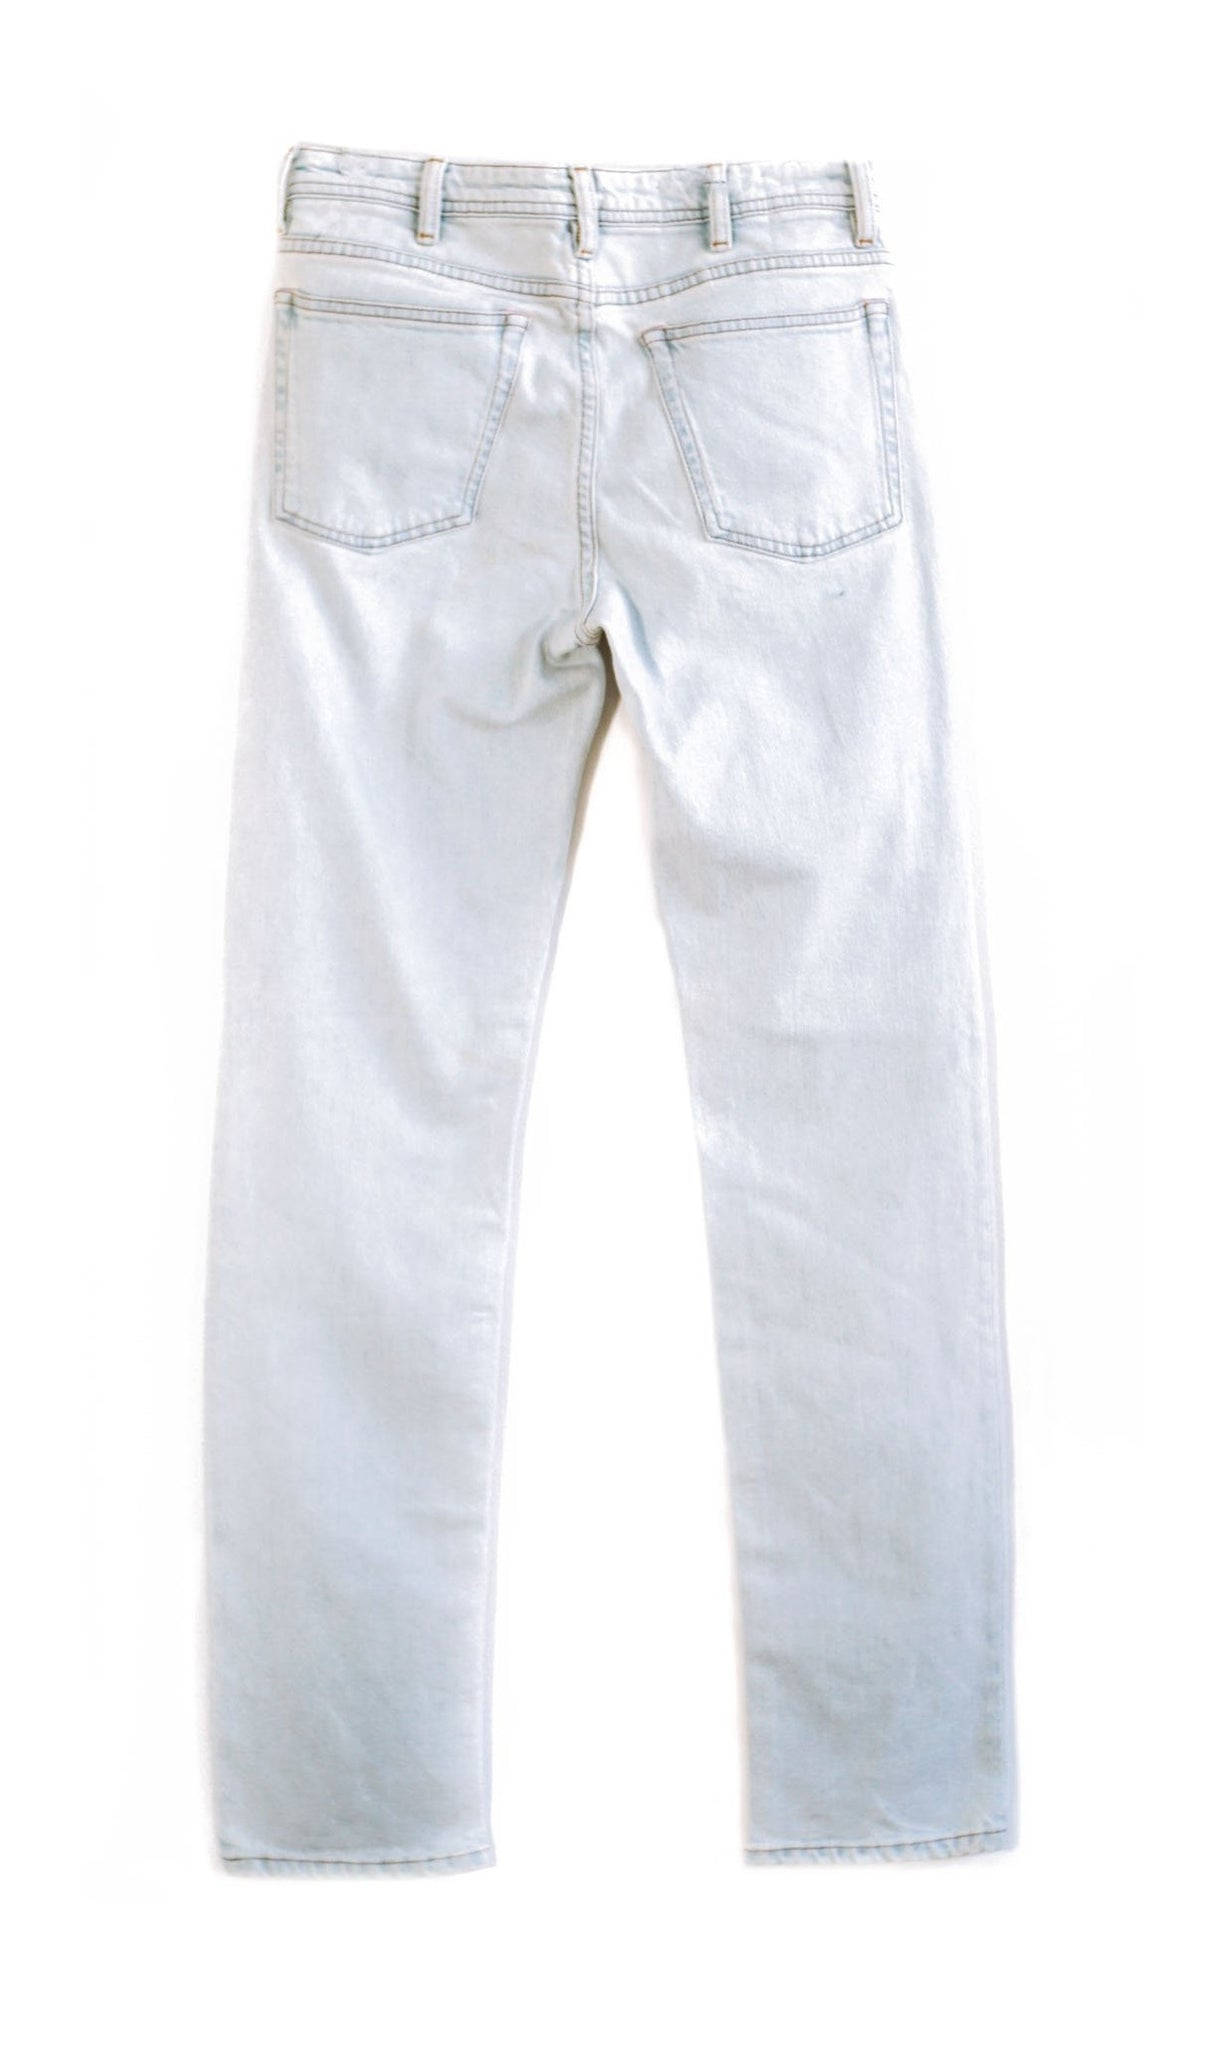 Acne Studio Low Rise Jeans